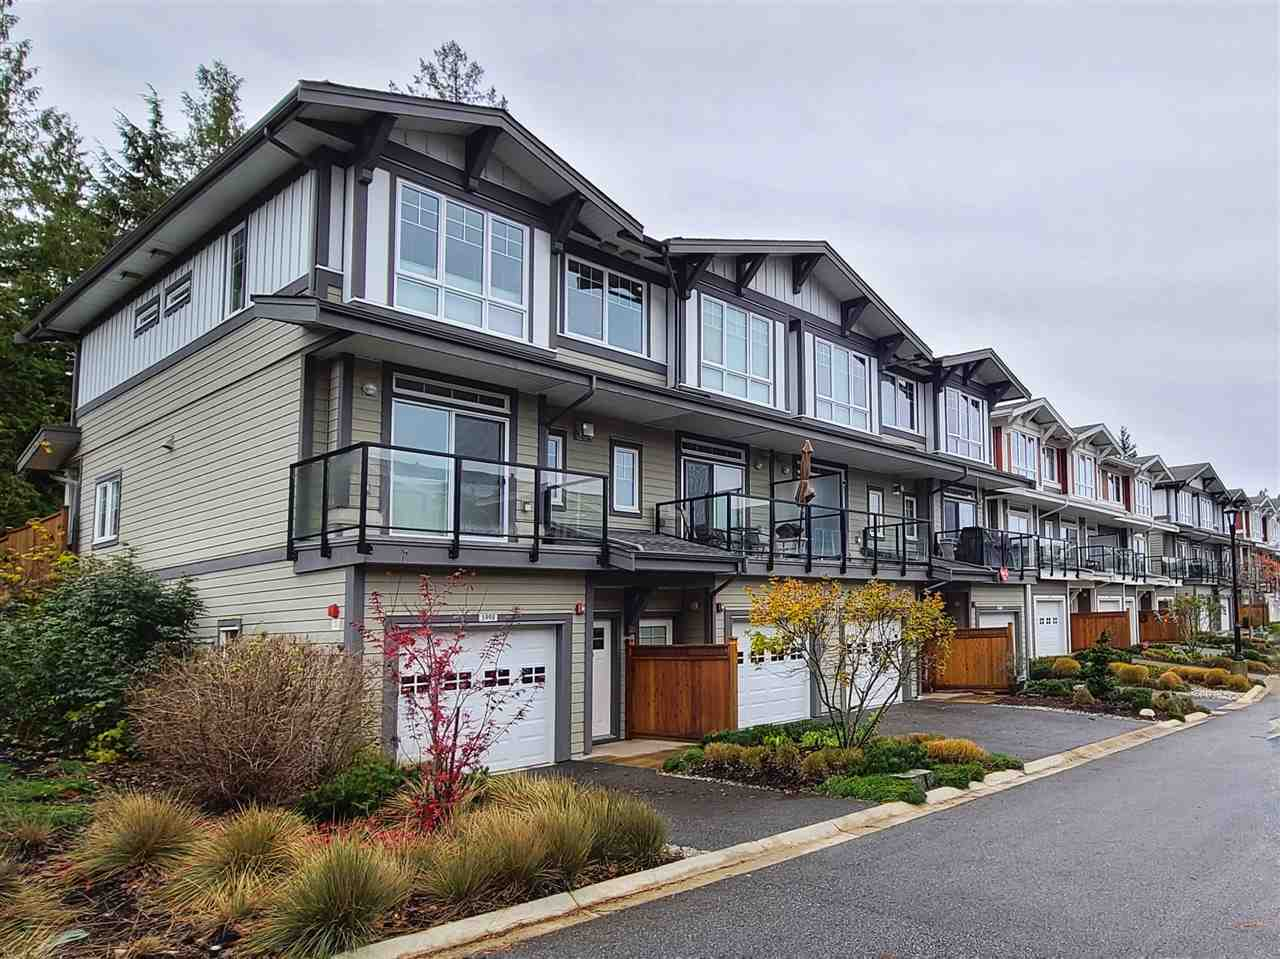 5994 OLDMILL LANE - Sechelt District Townhouse for sale, 3 Bedrooms (R2520138)